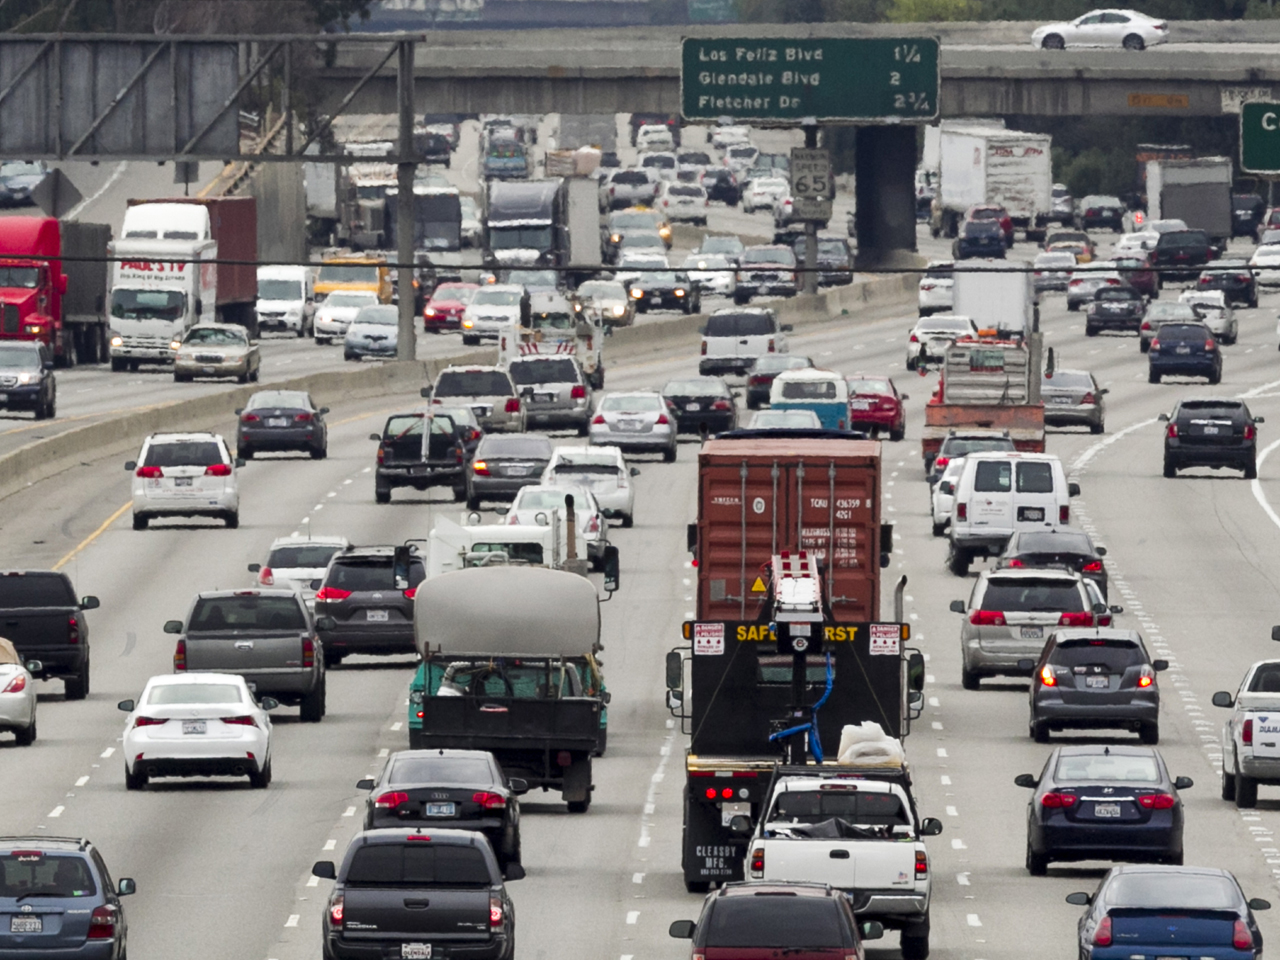 What California Freeway Has The Most Gridlock